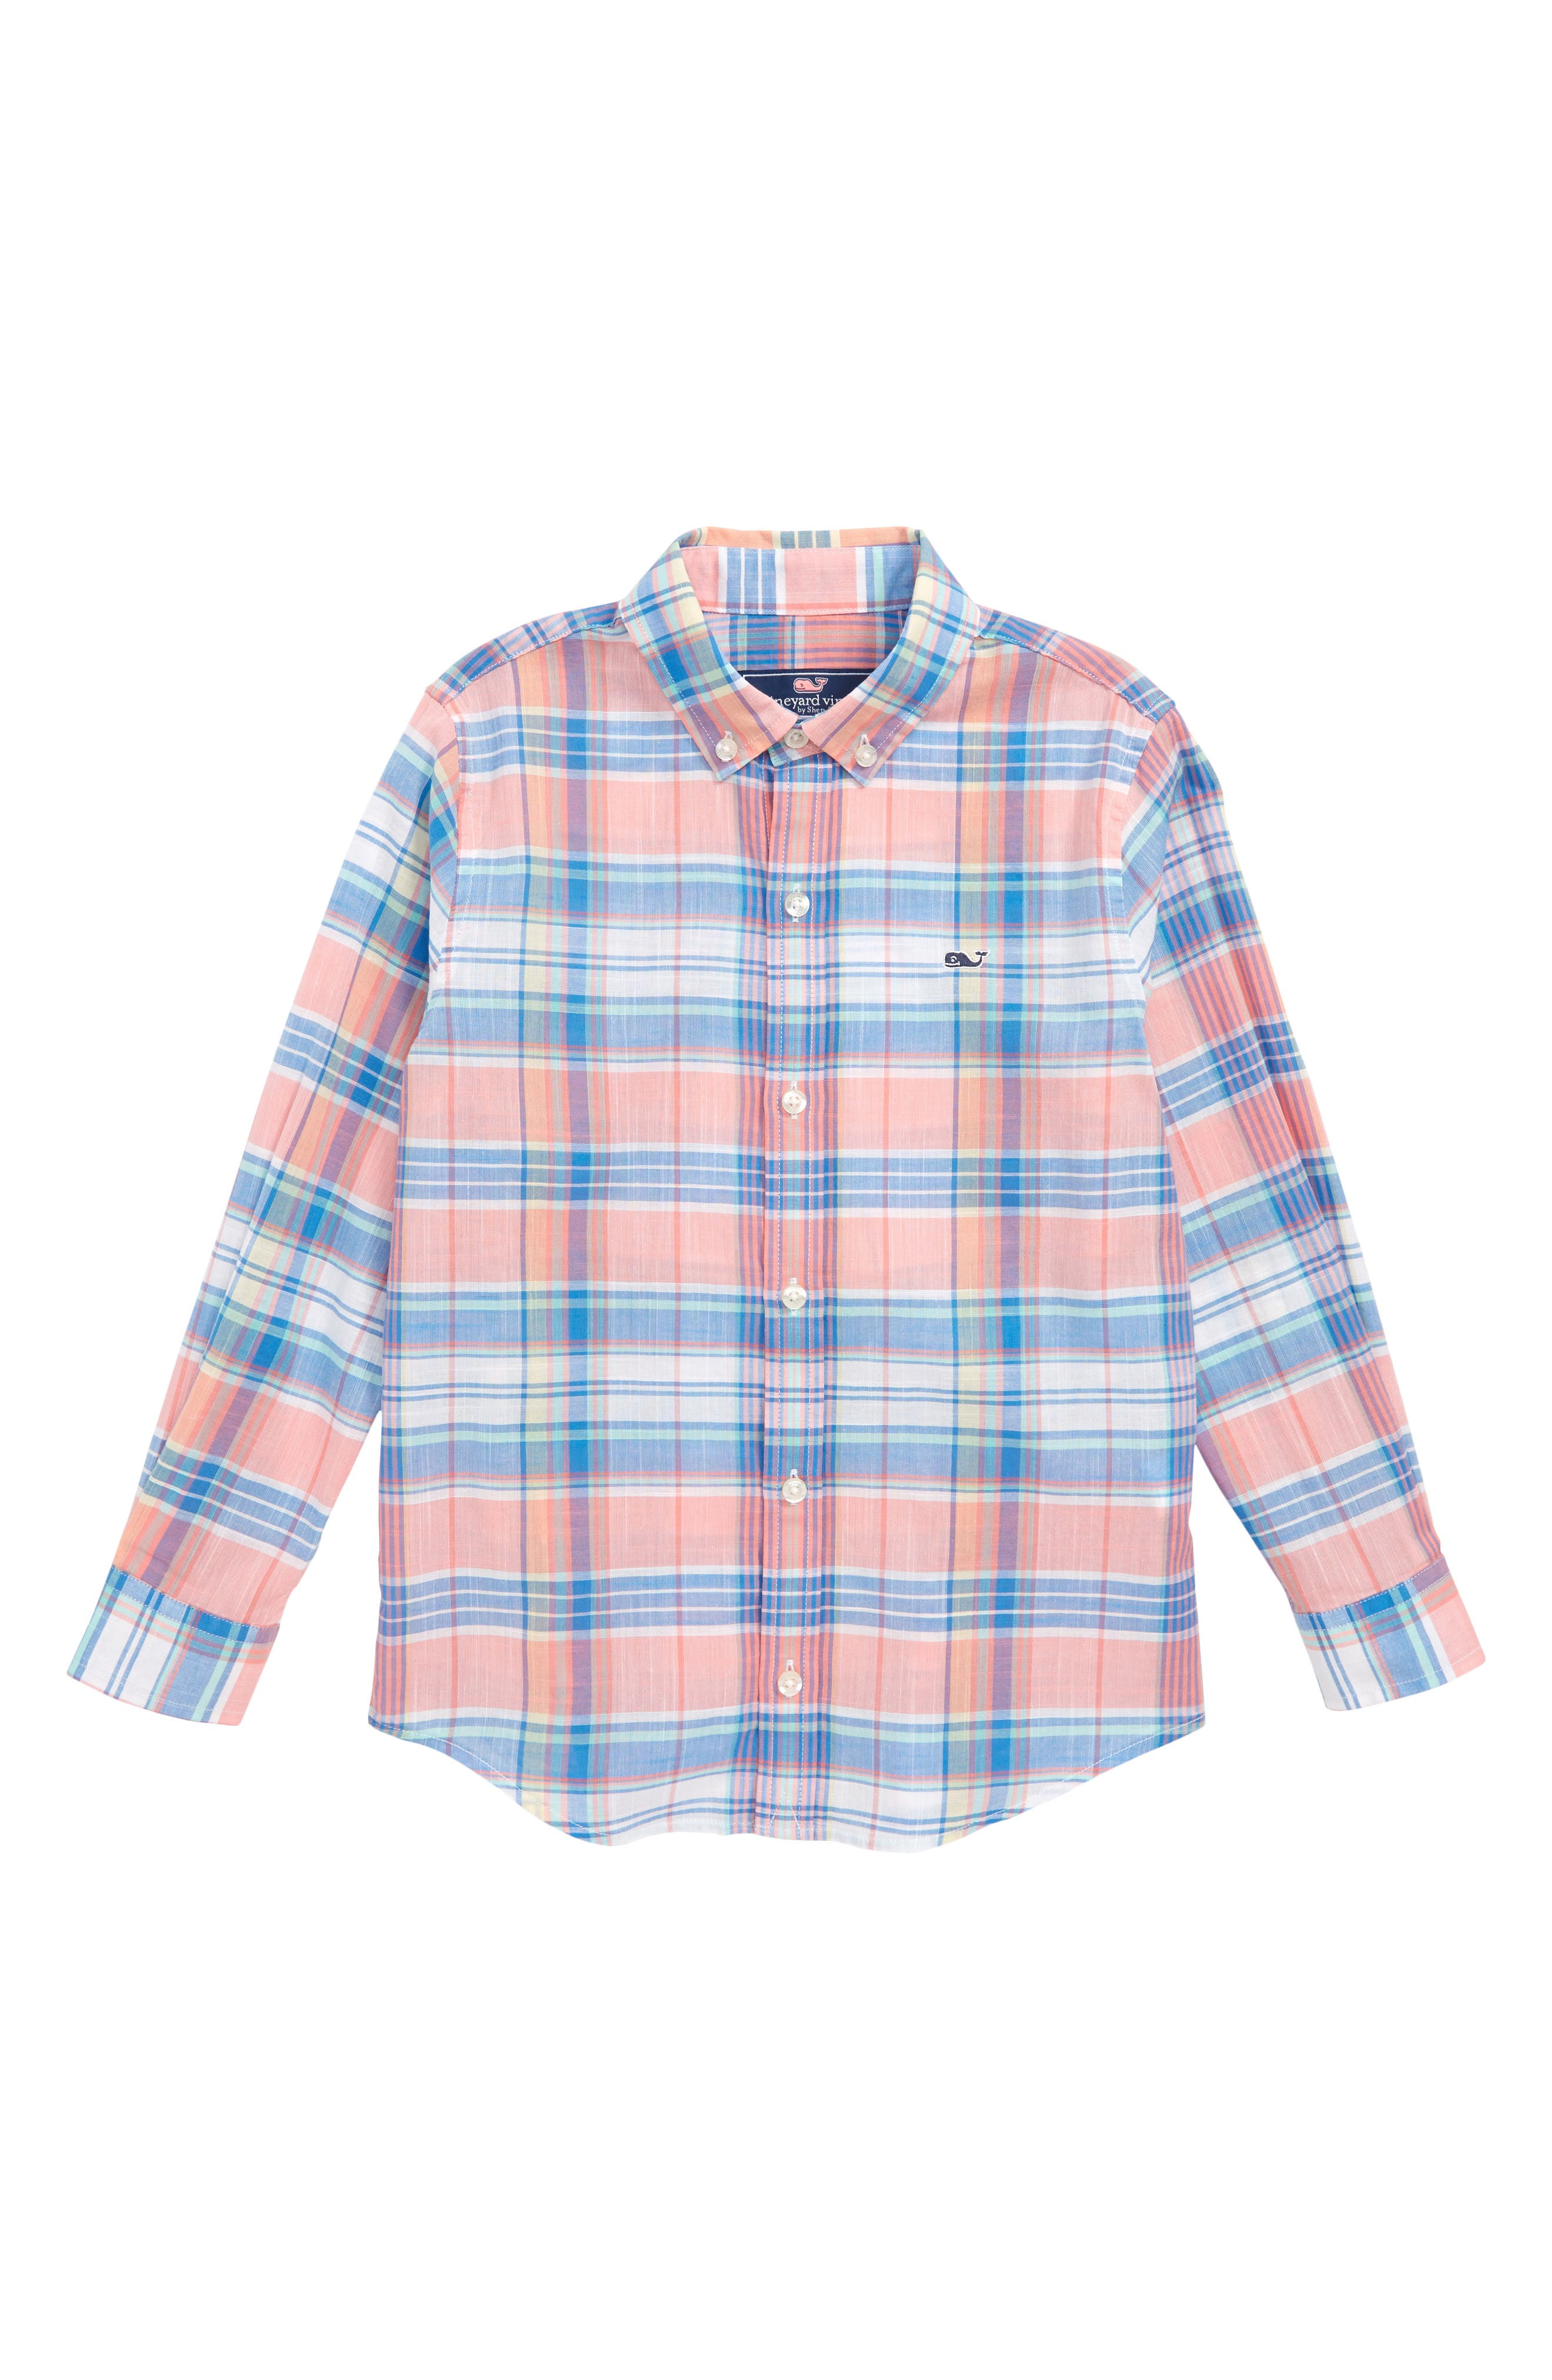 Smith Point Plaid Whale Shirt,                             Main thumbnail 1, color,                             Washed Neon Pink